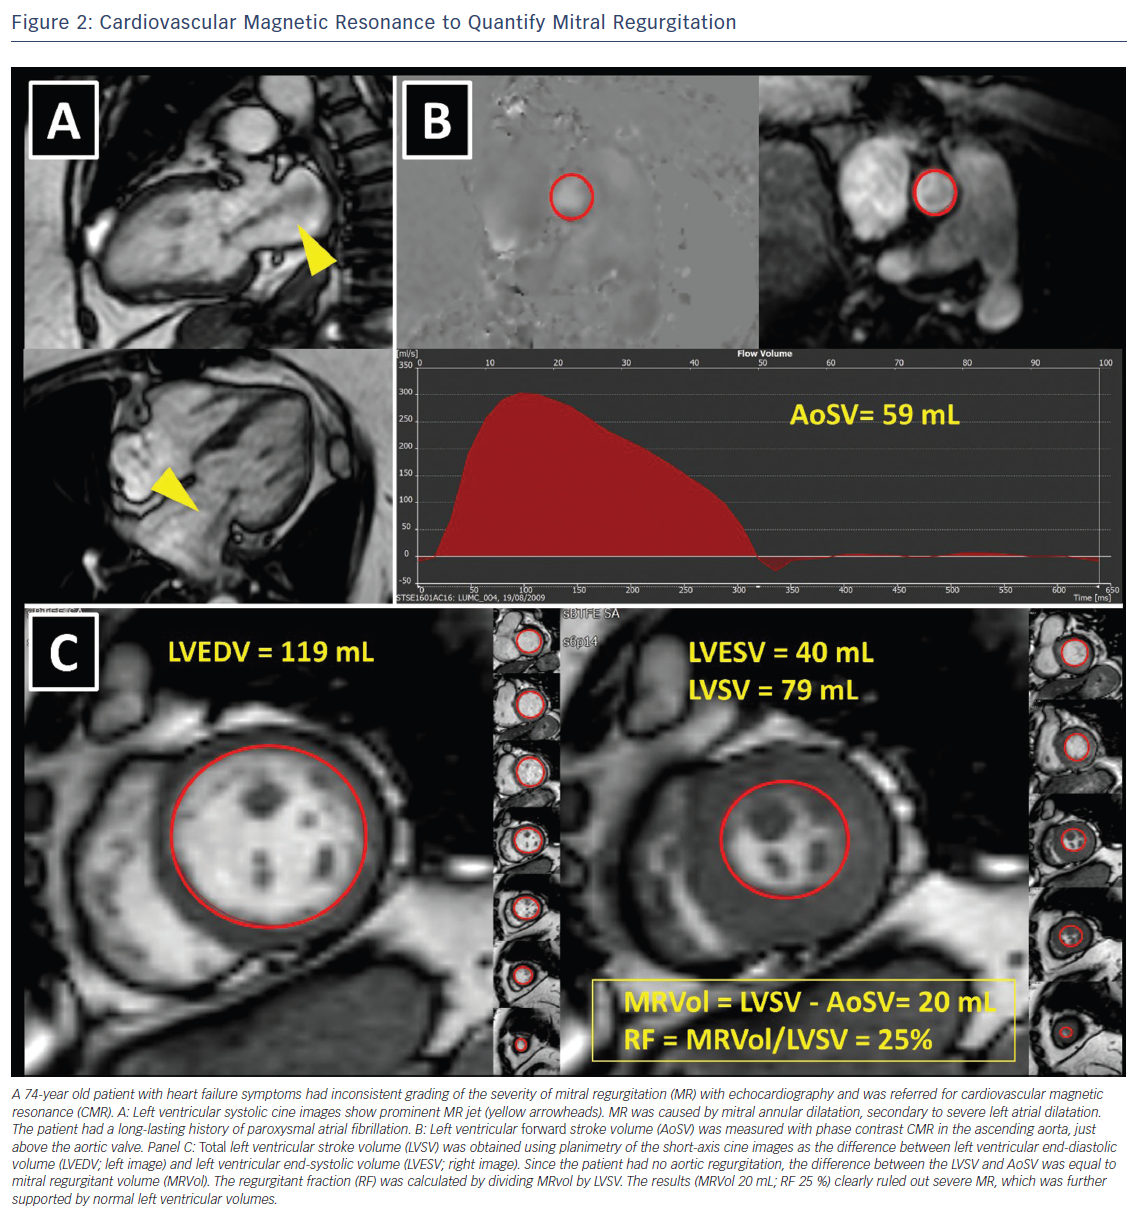 Figure 2: Cardiovascular Magnetic Resonance to Quantify Mitral Regurgitation